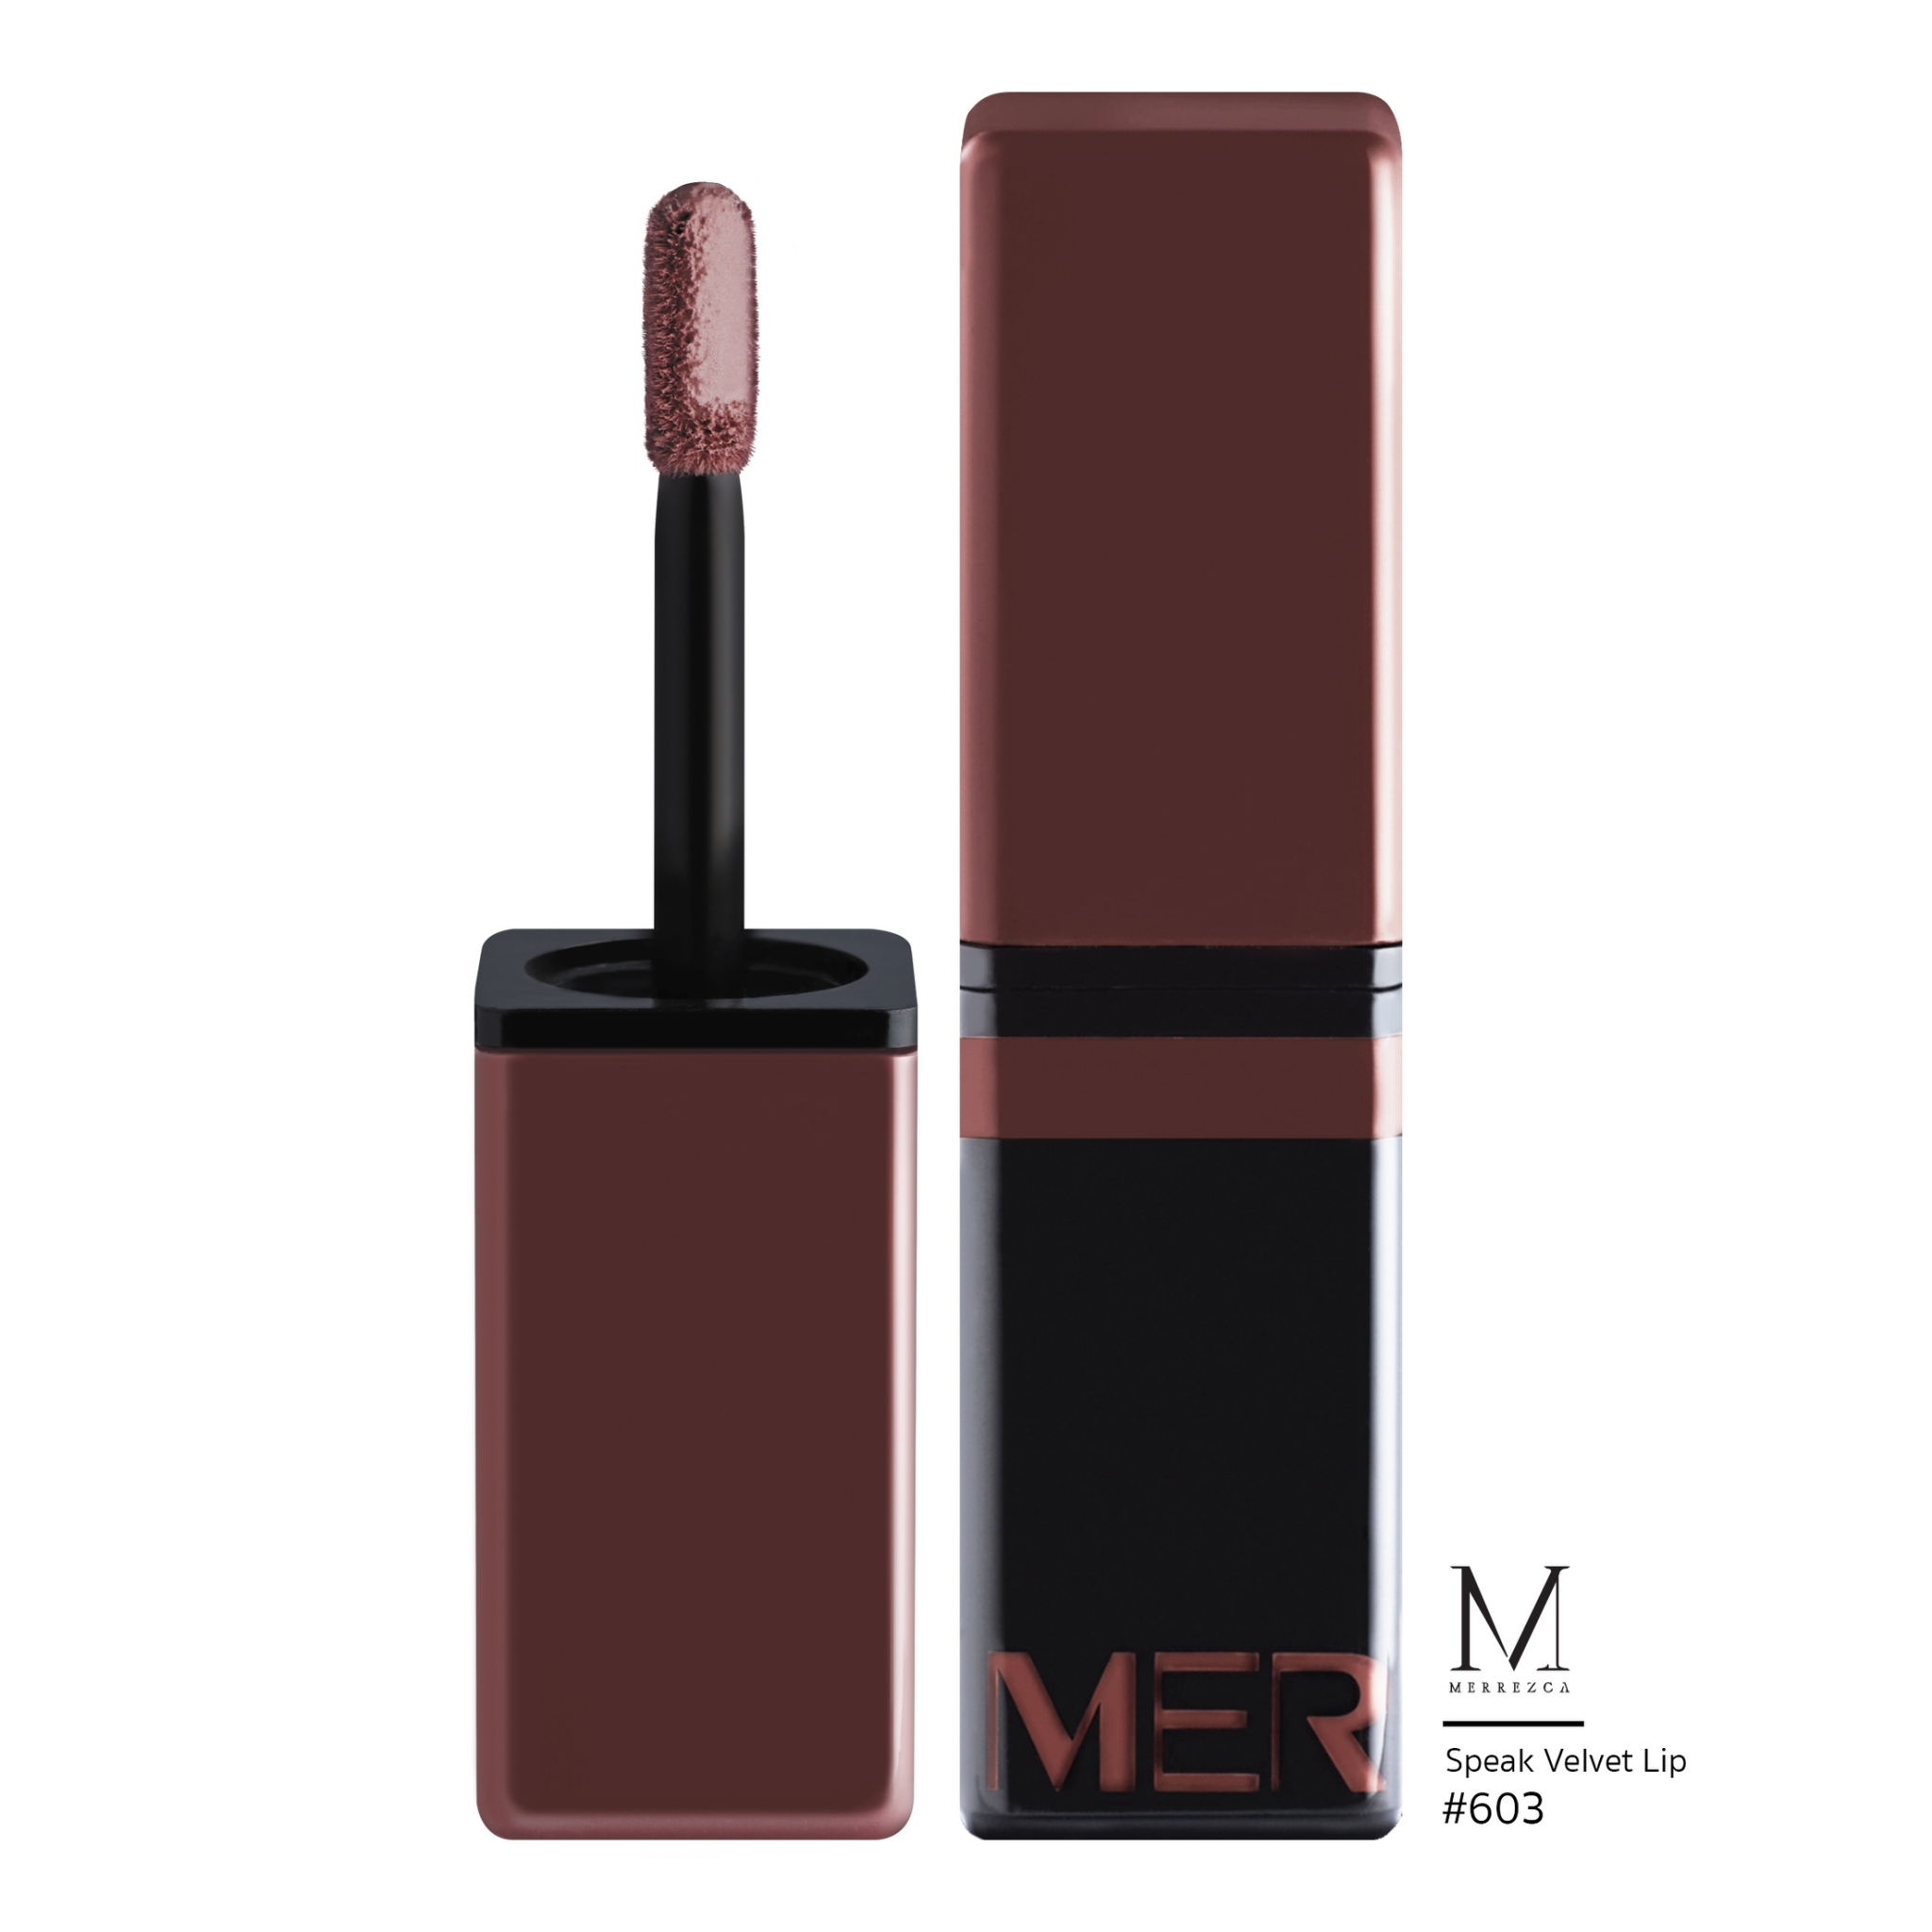 Merrez'ca Speak Velvet Lip # 603